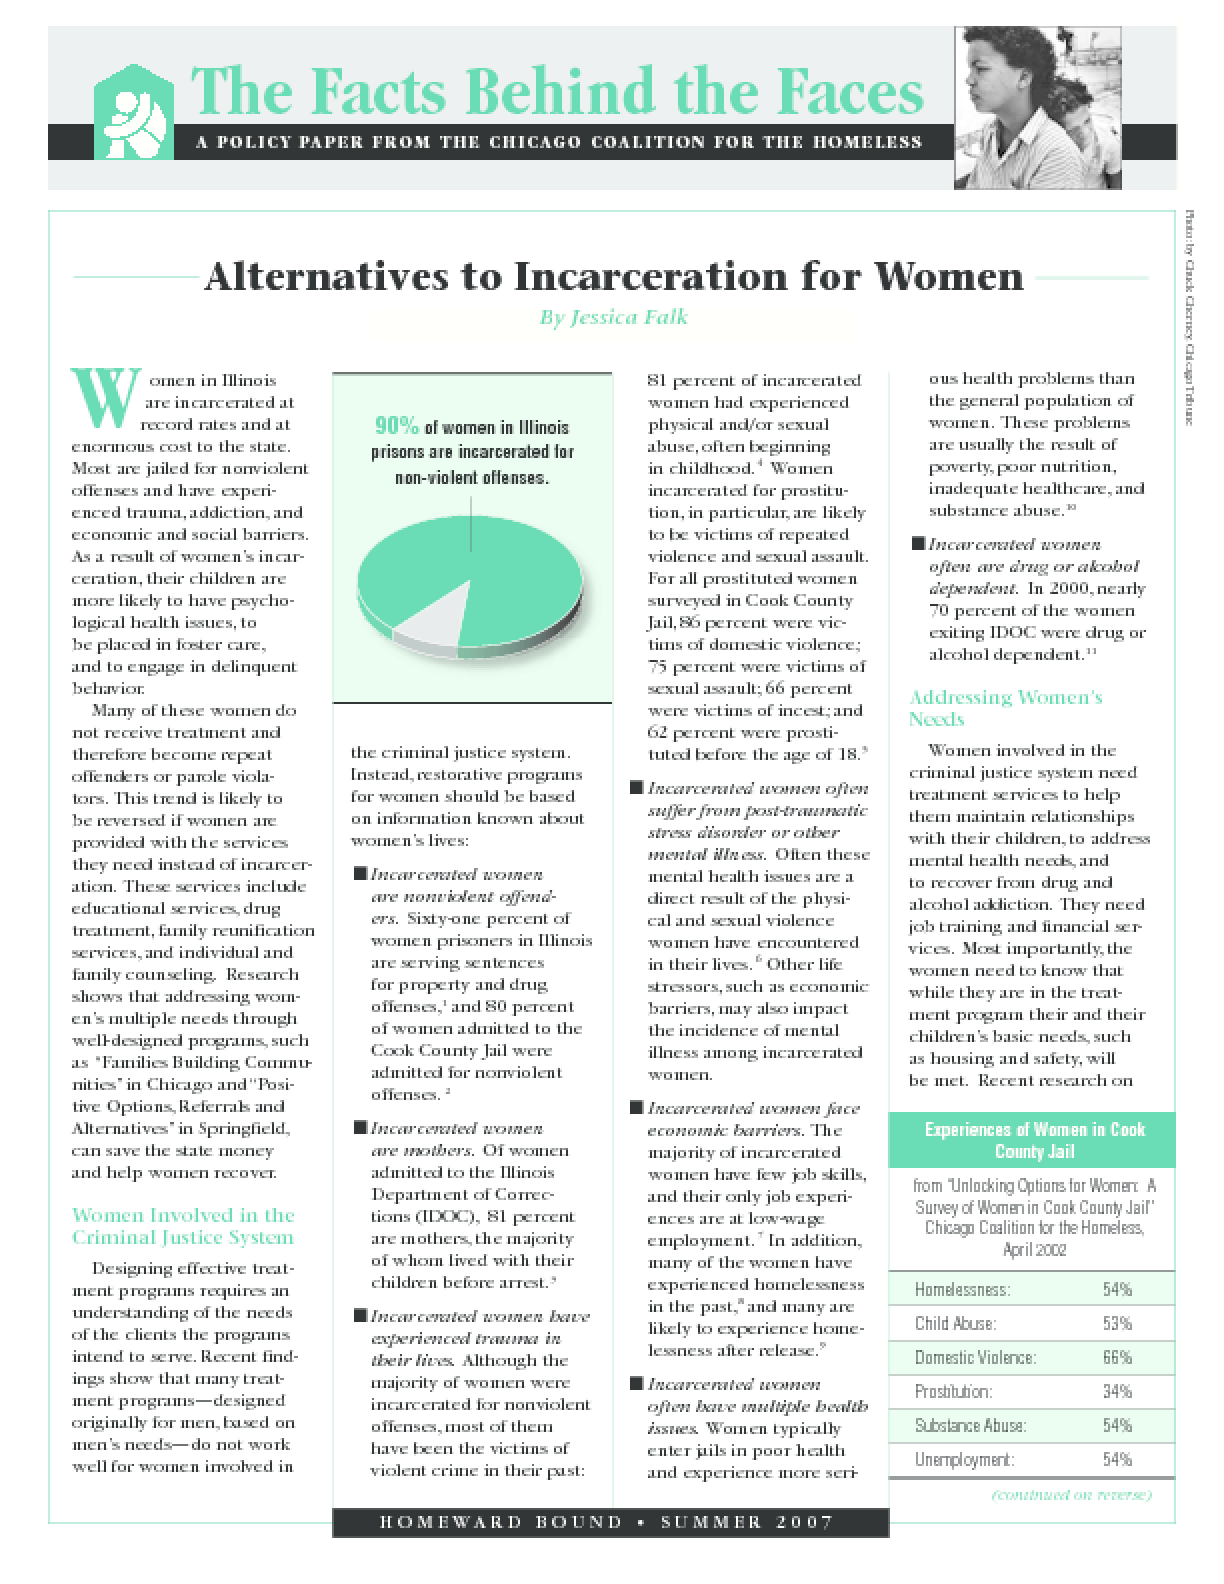 Alternatives to Incarceration for Women